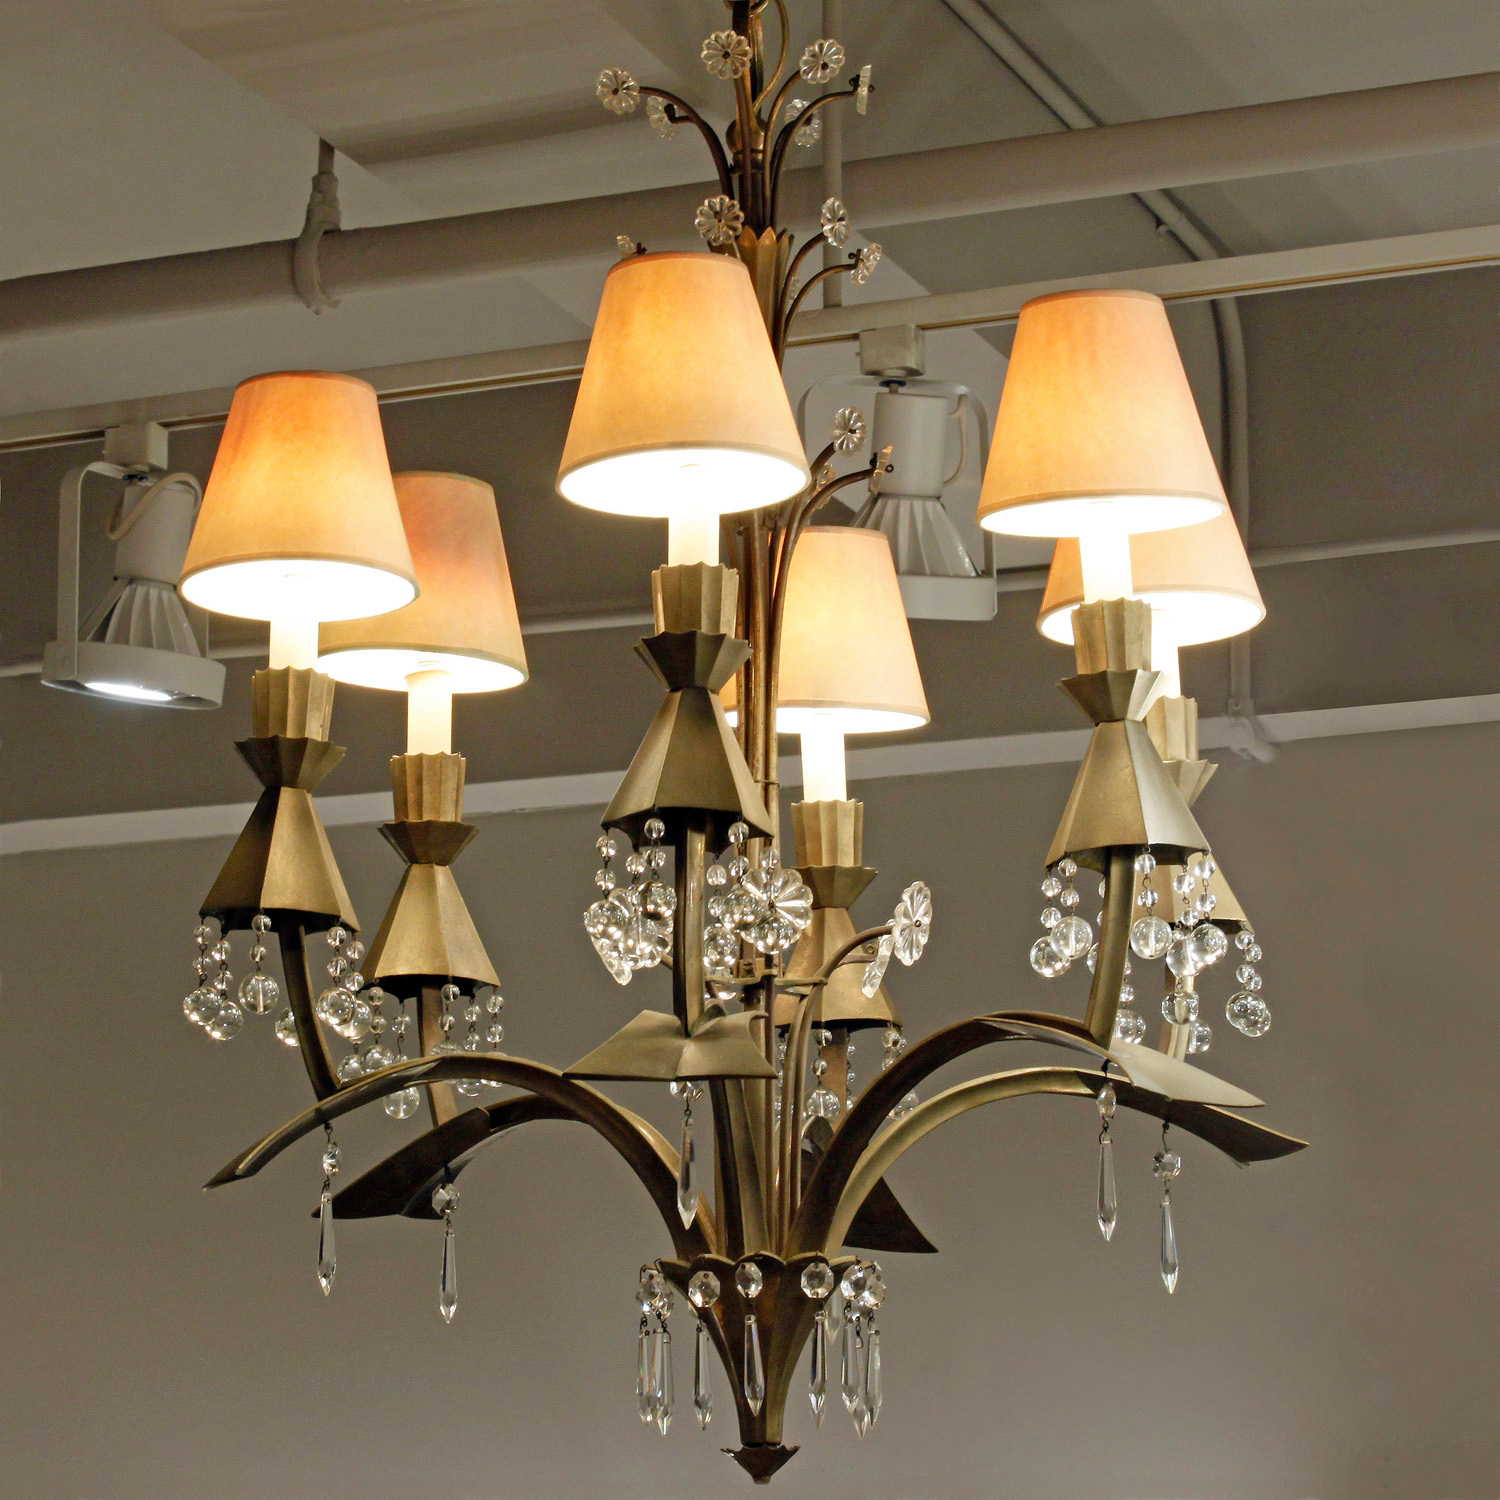 French 75 40s bronze+crystal blls chandelier225 hires main.jpg